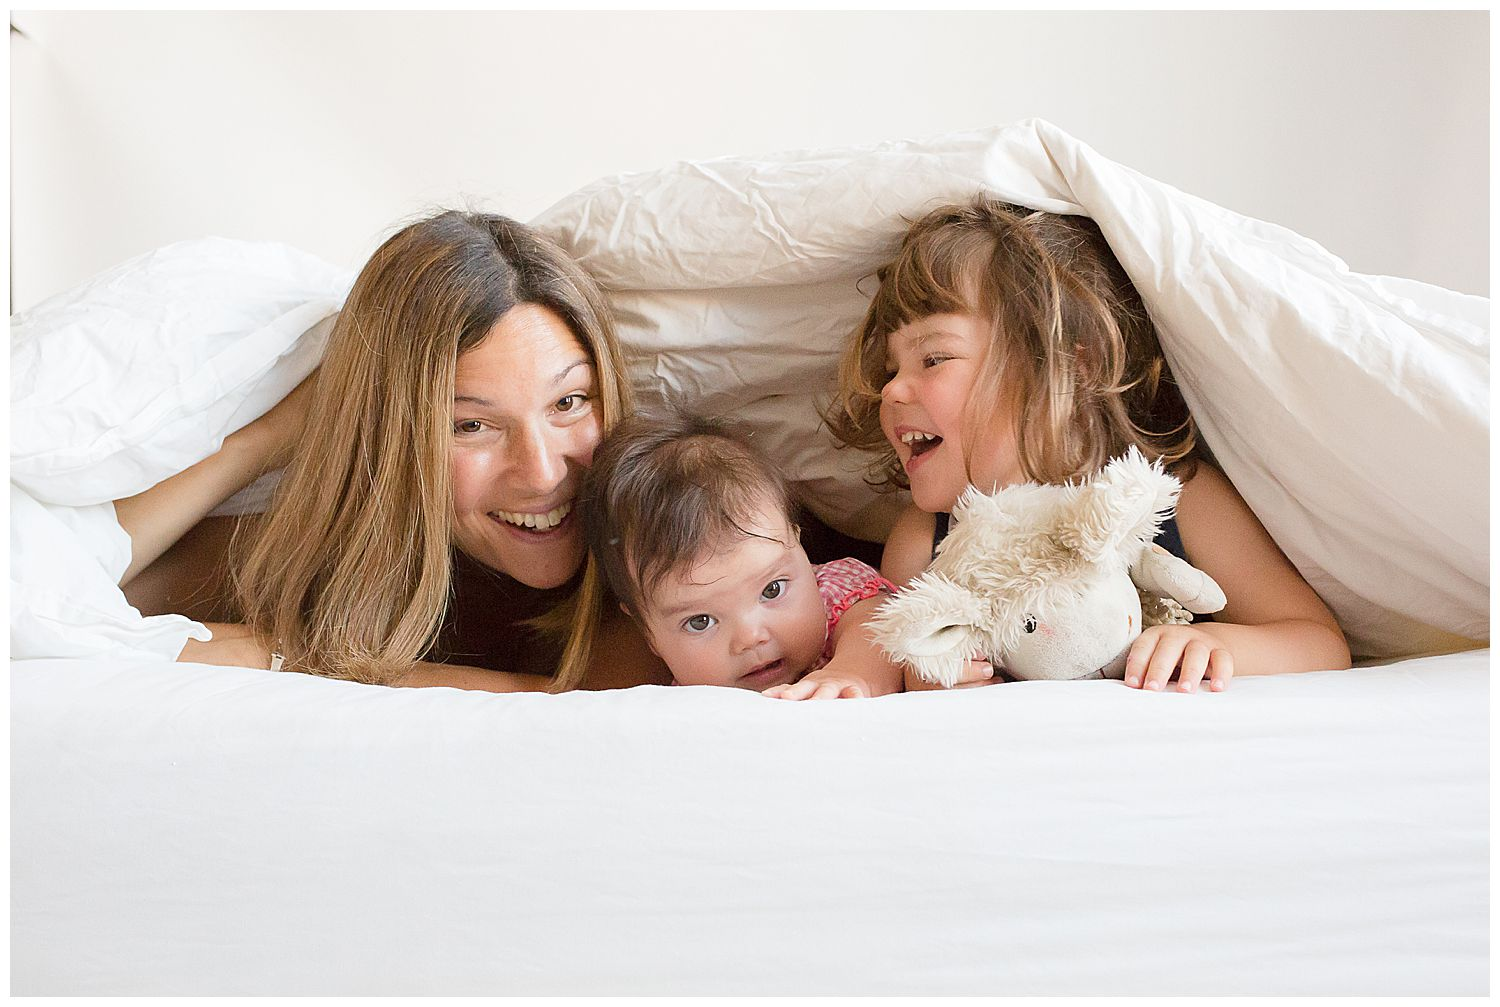 mum hiding under covers with two girls